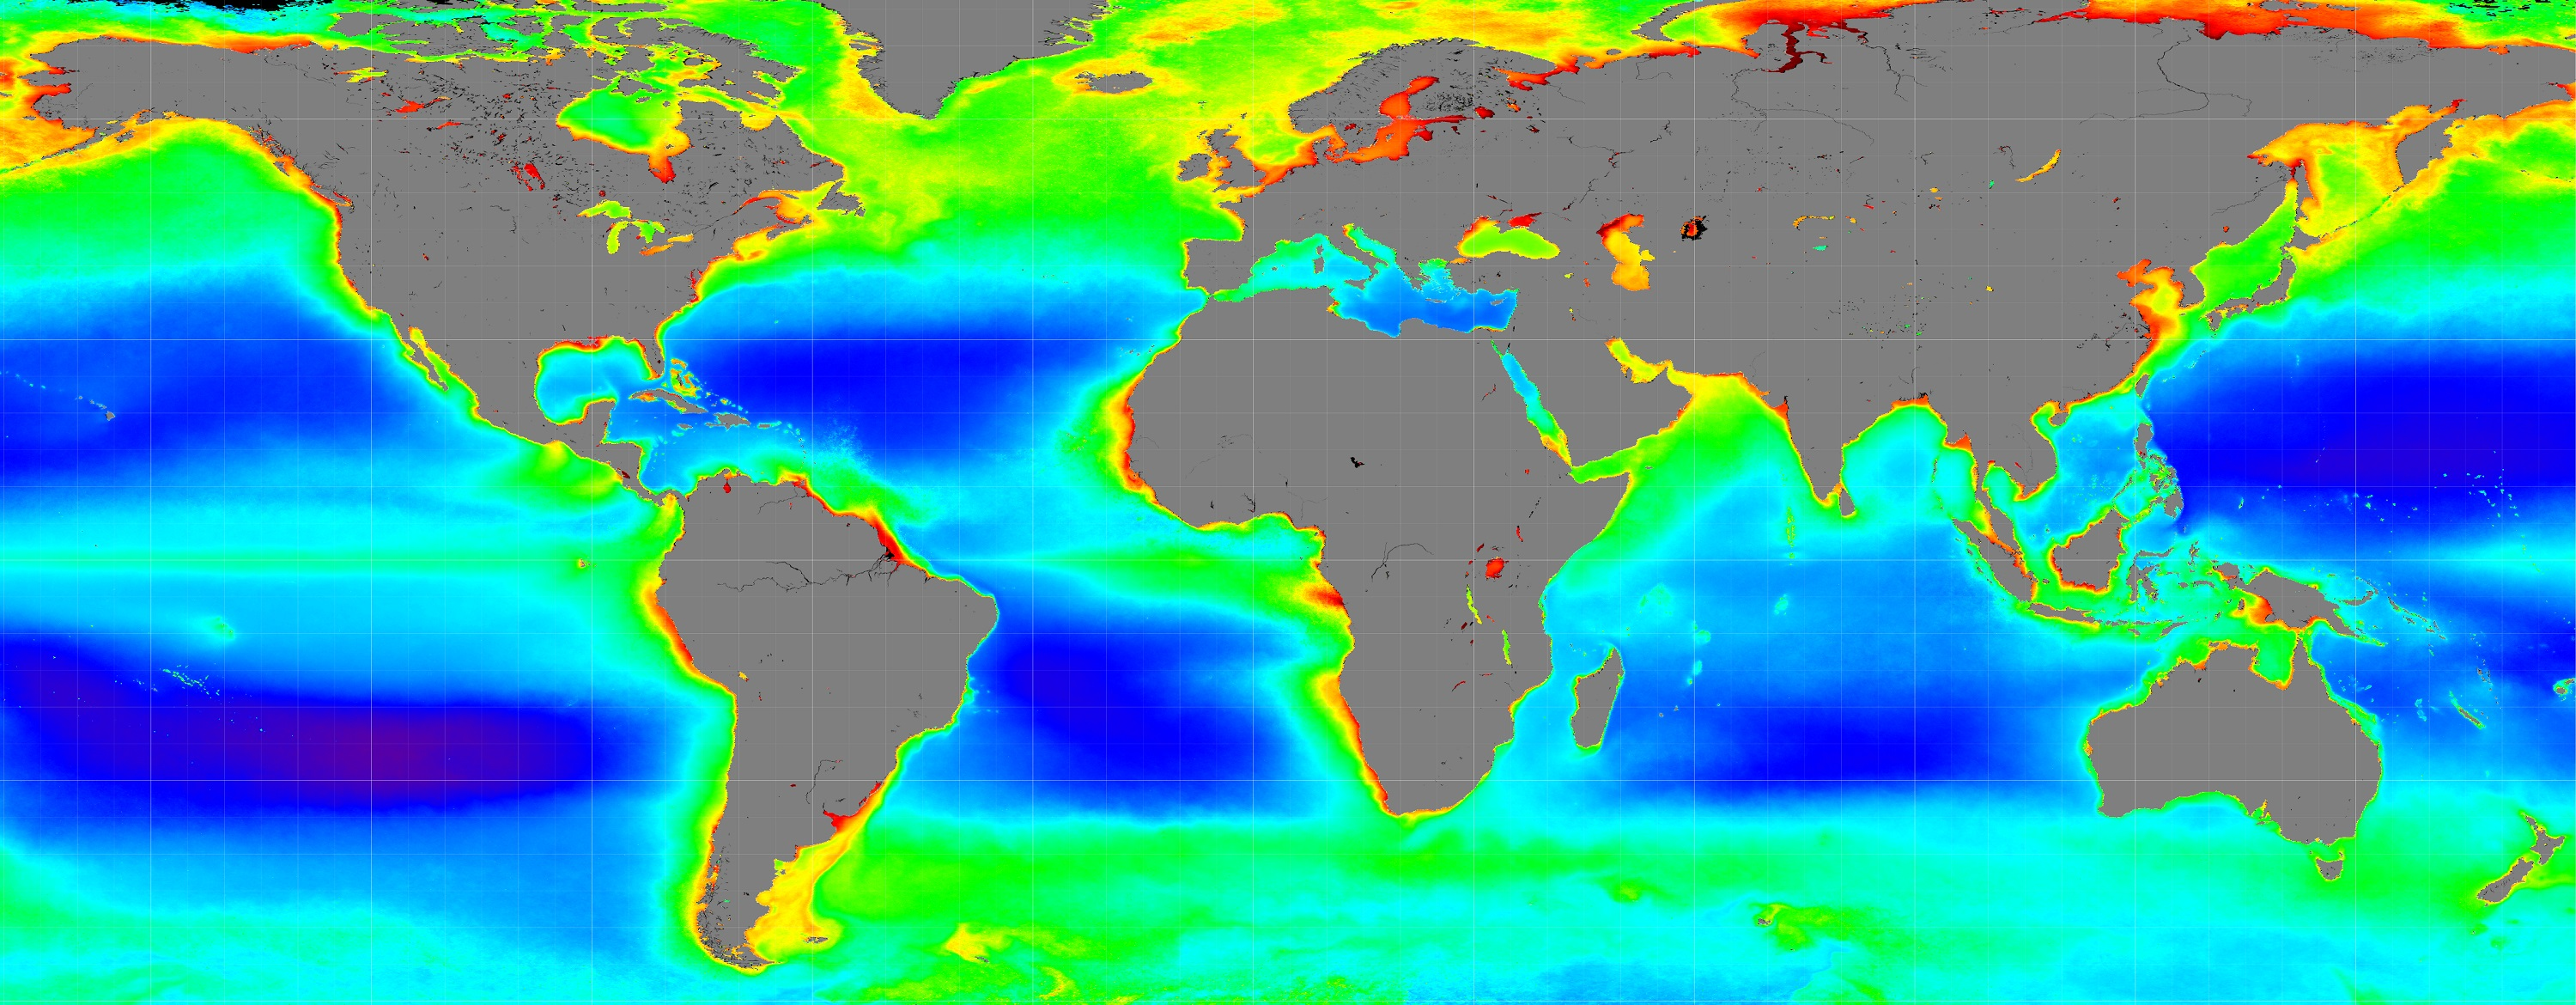 New nasa mission to study ocean color airborne particles and clouds global ocean color observations from data gathered by nasas pace spacecraft gumiabroncs Images